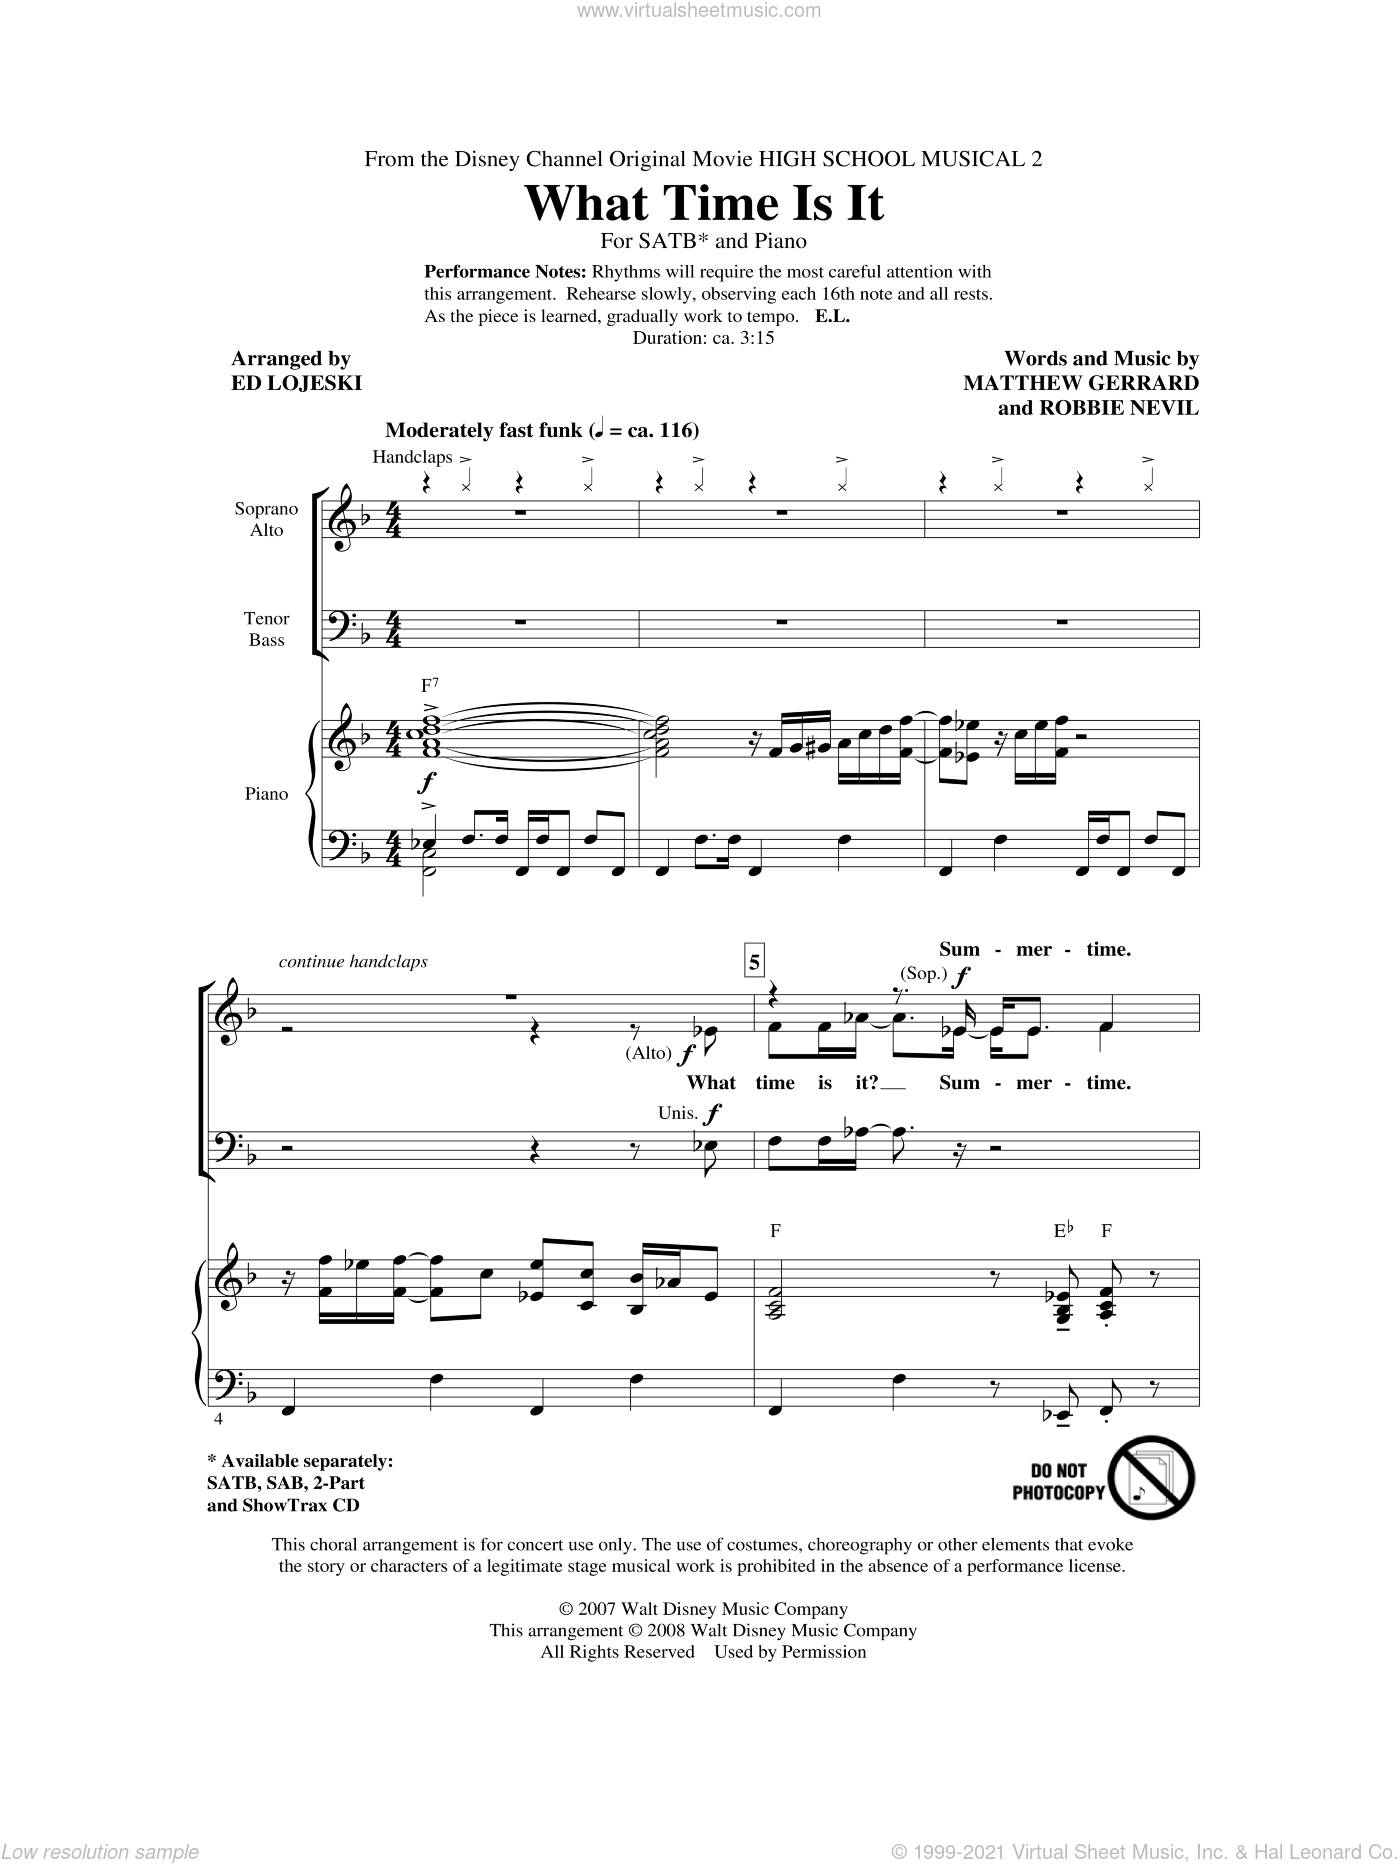 What Time Is It sheet music for choir and piano (SATB) by Matthew Gerrard